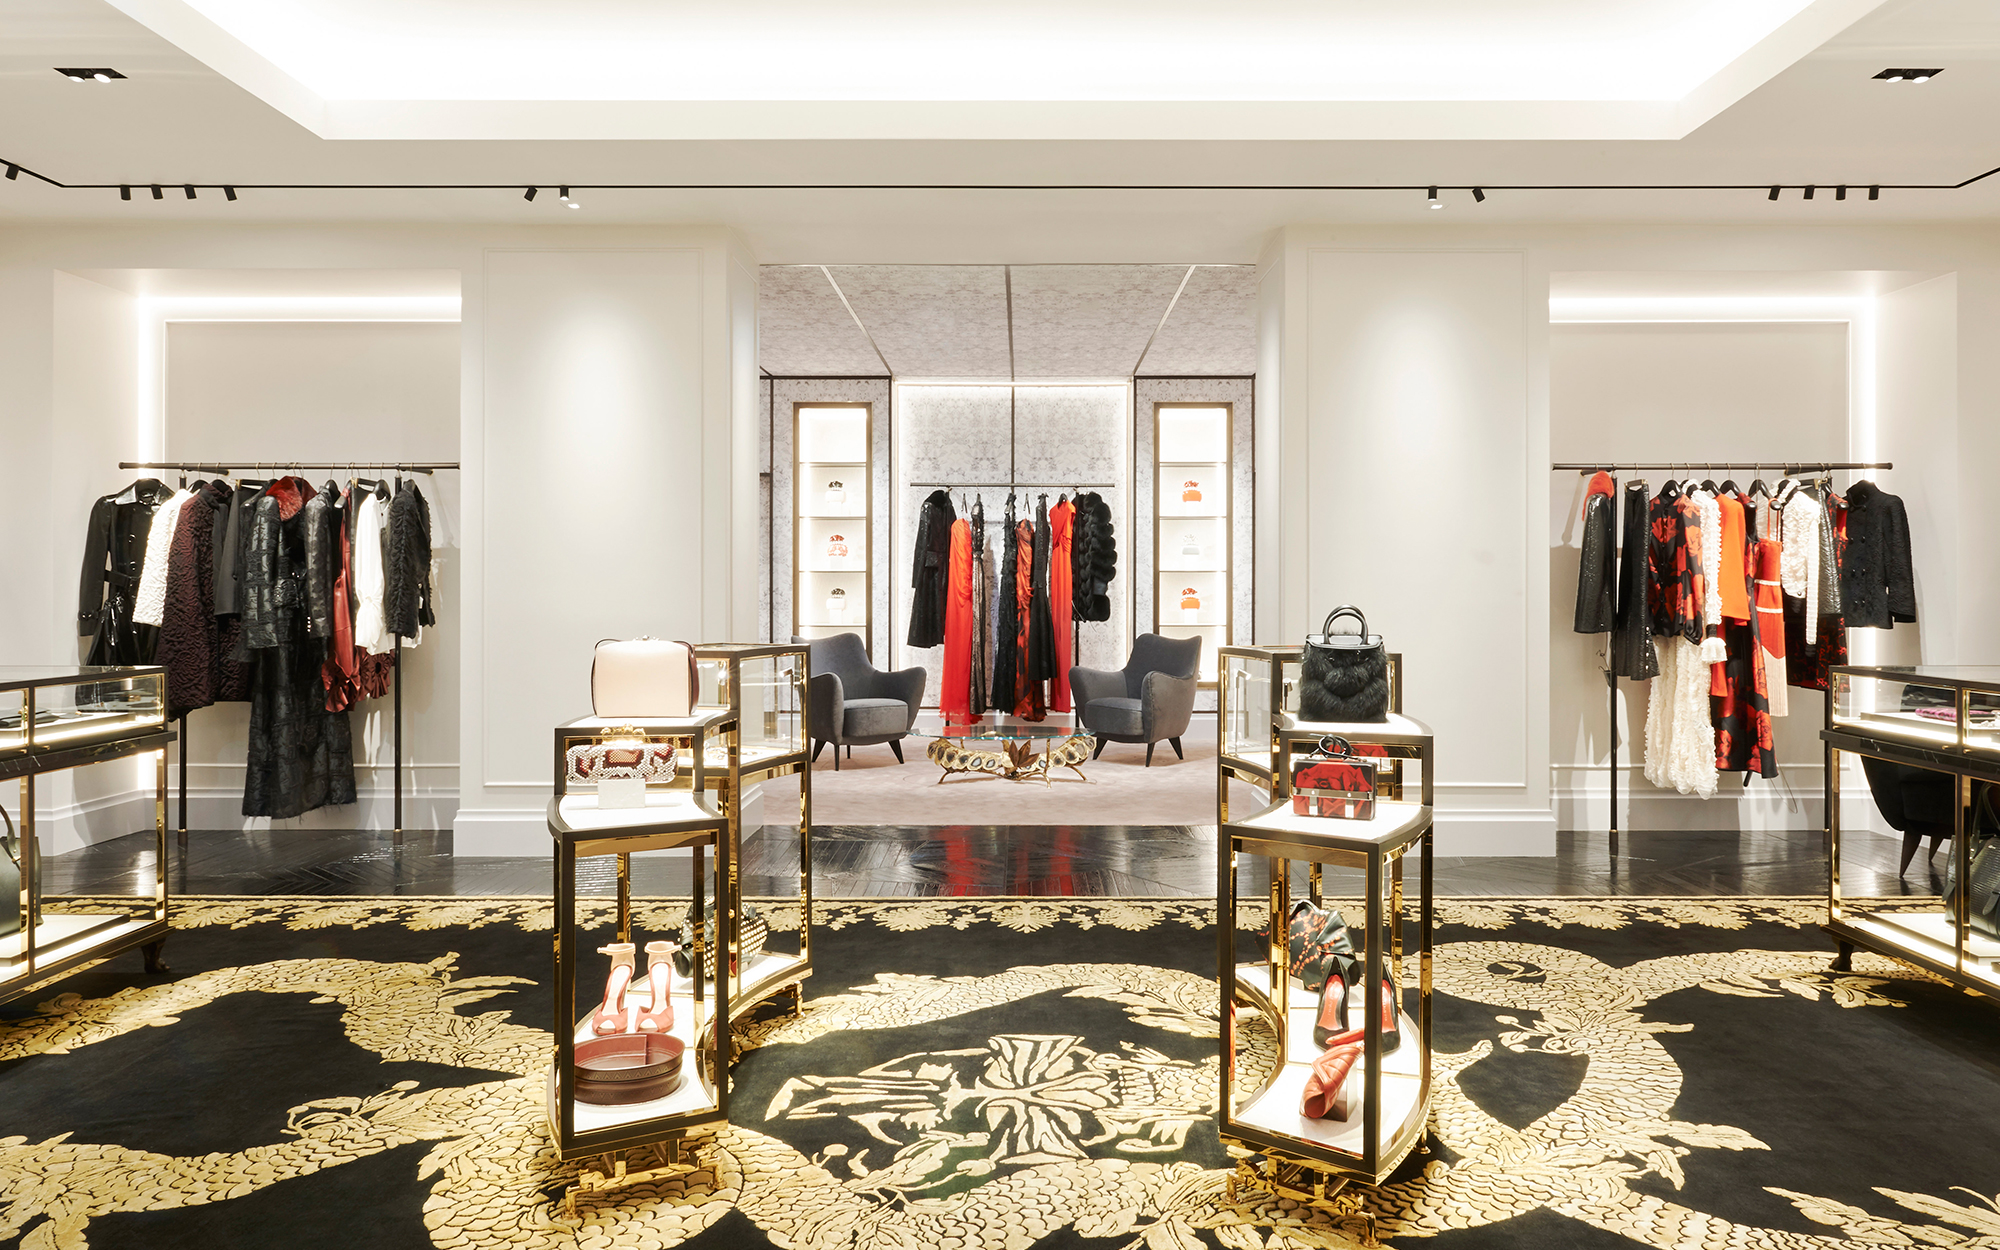 820621aa7f705 Alexander McQueen's Paris Boutique Wins Design Award - Pursuitist